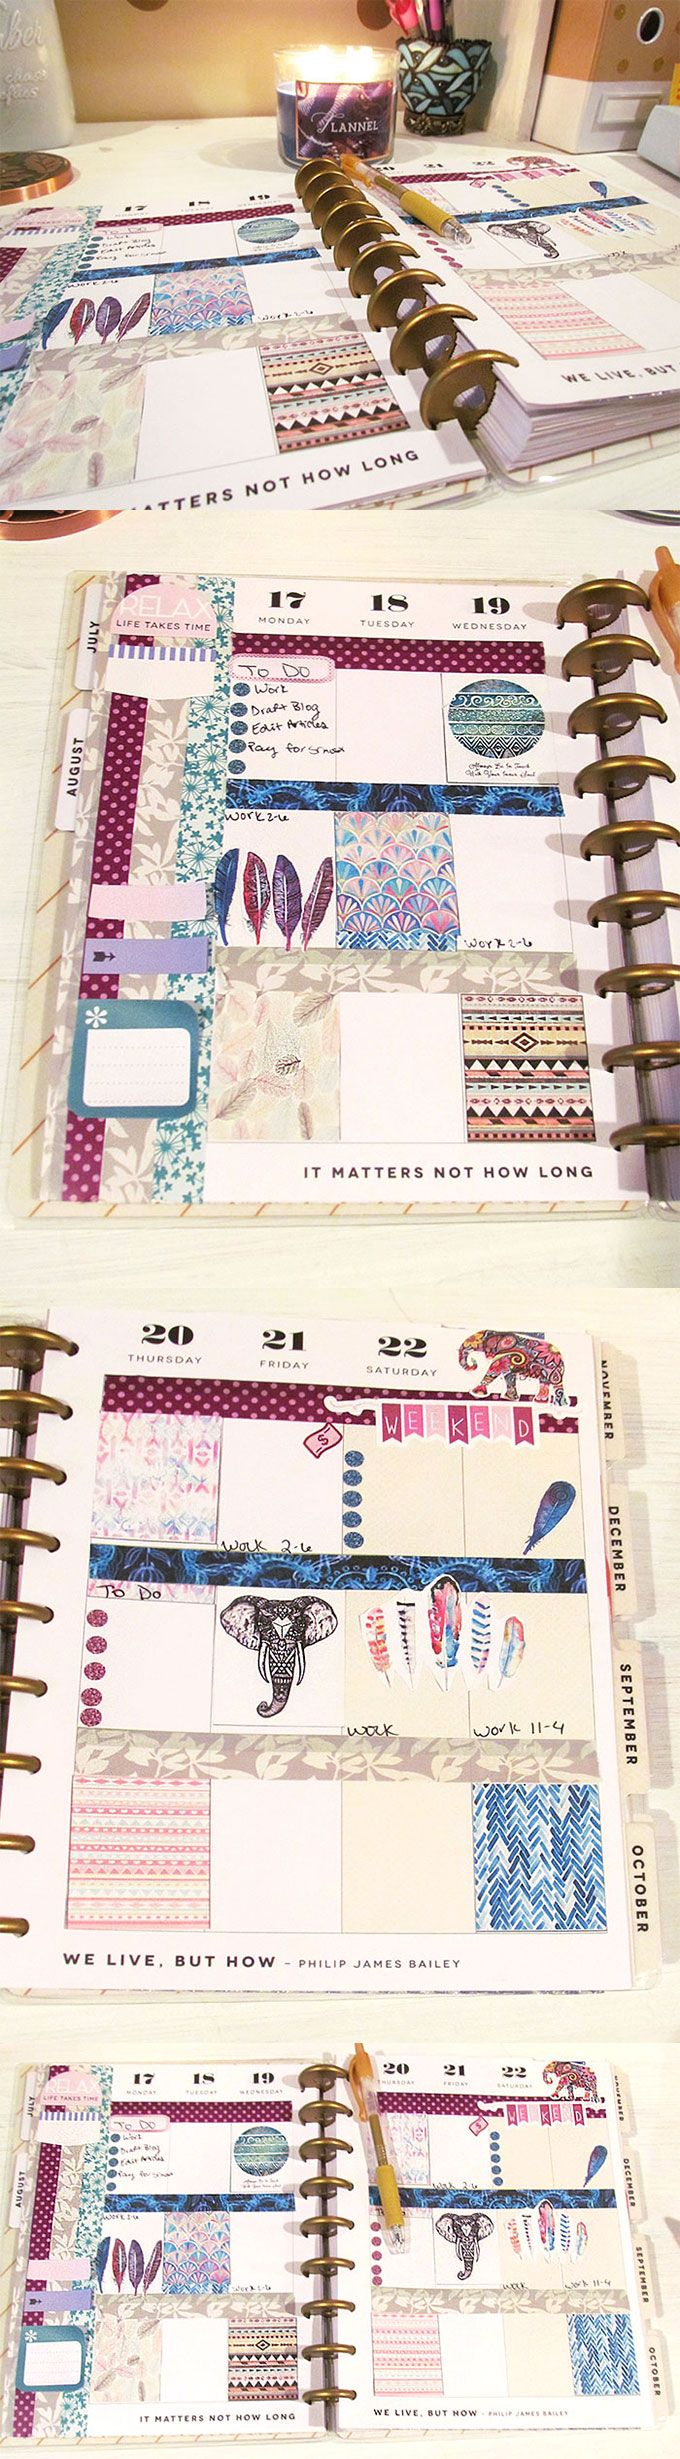 Free planner stickers and how-to glam plan! www.fellybee.com http://ewoodworkingprojects.com/making-reclaimed-bench/